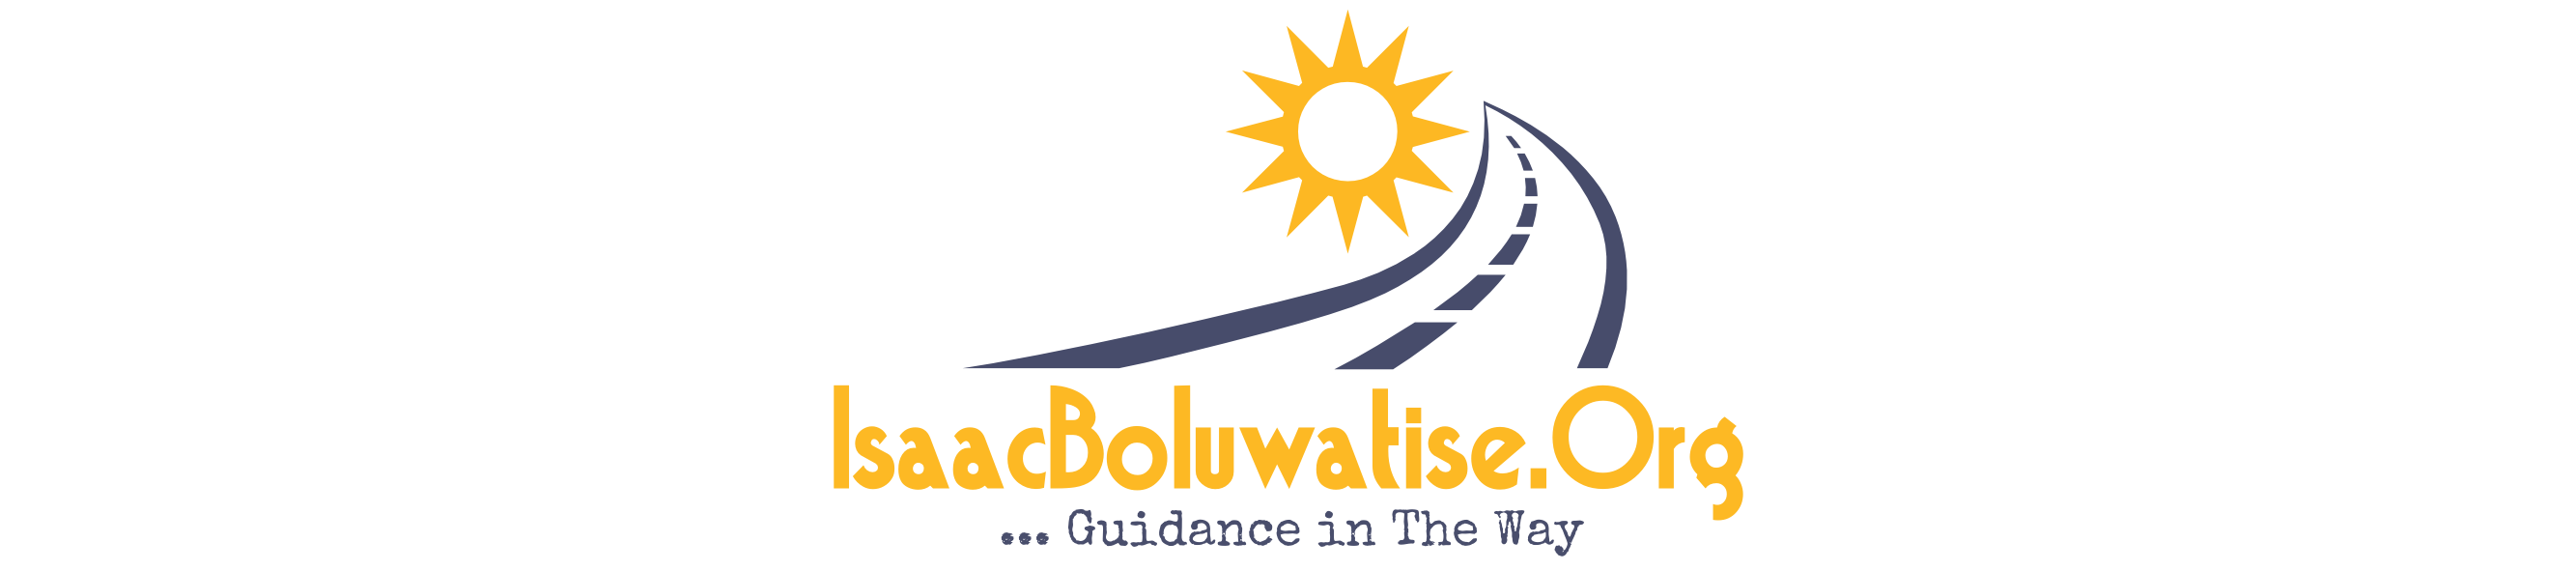 IsaacBoluwatise.Org